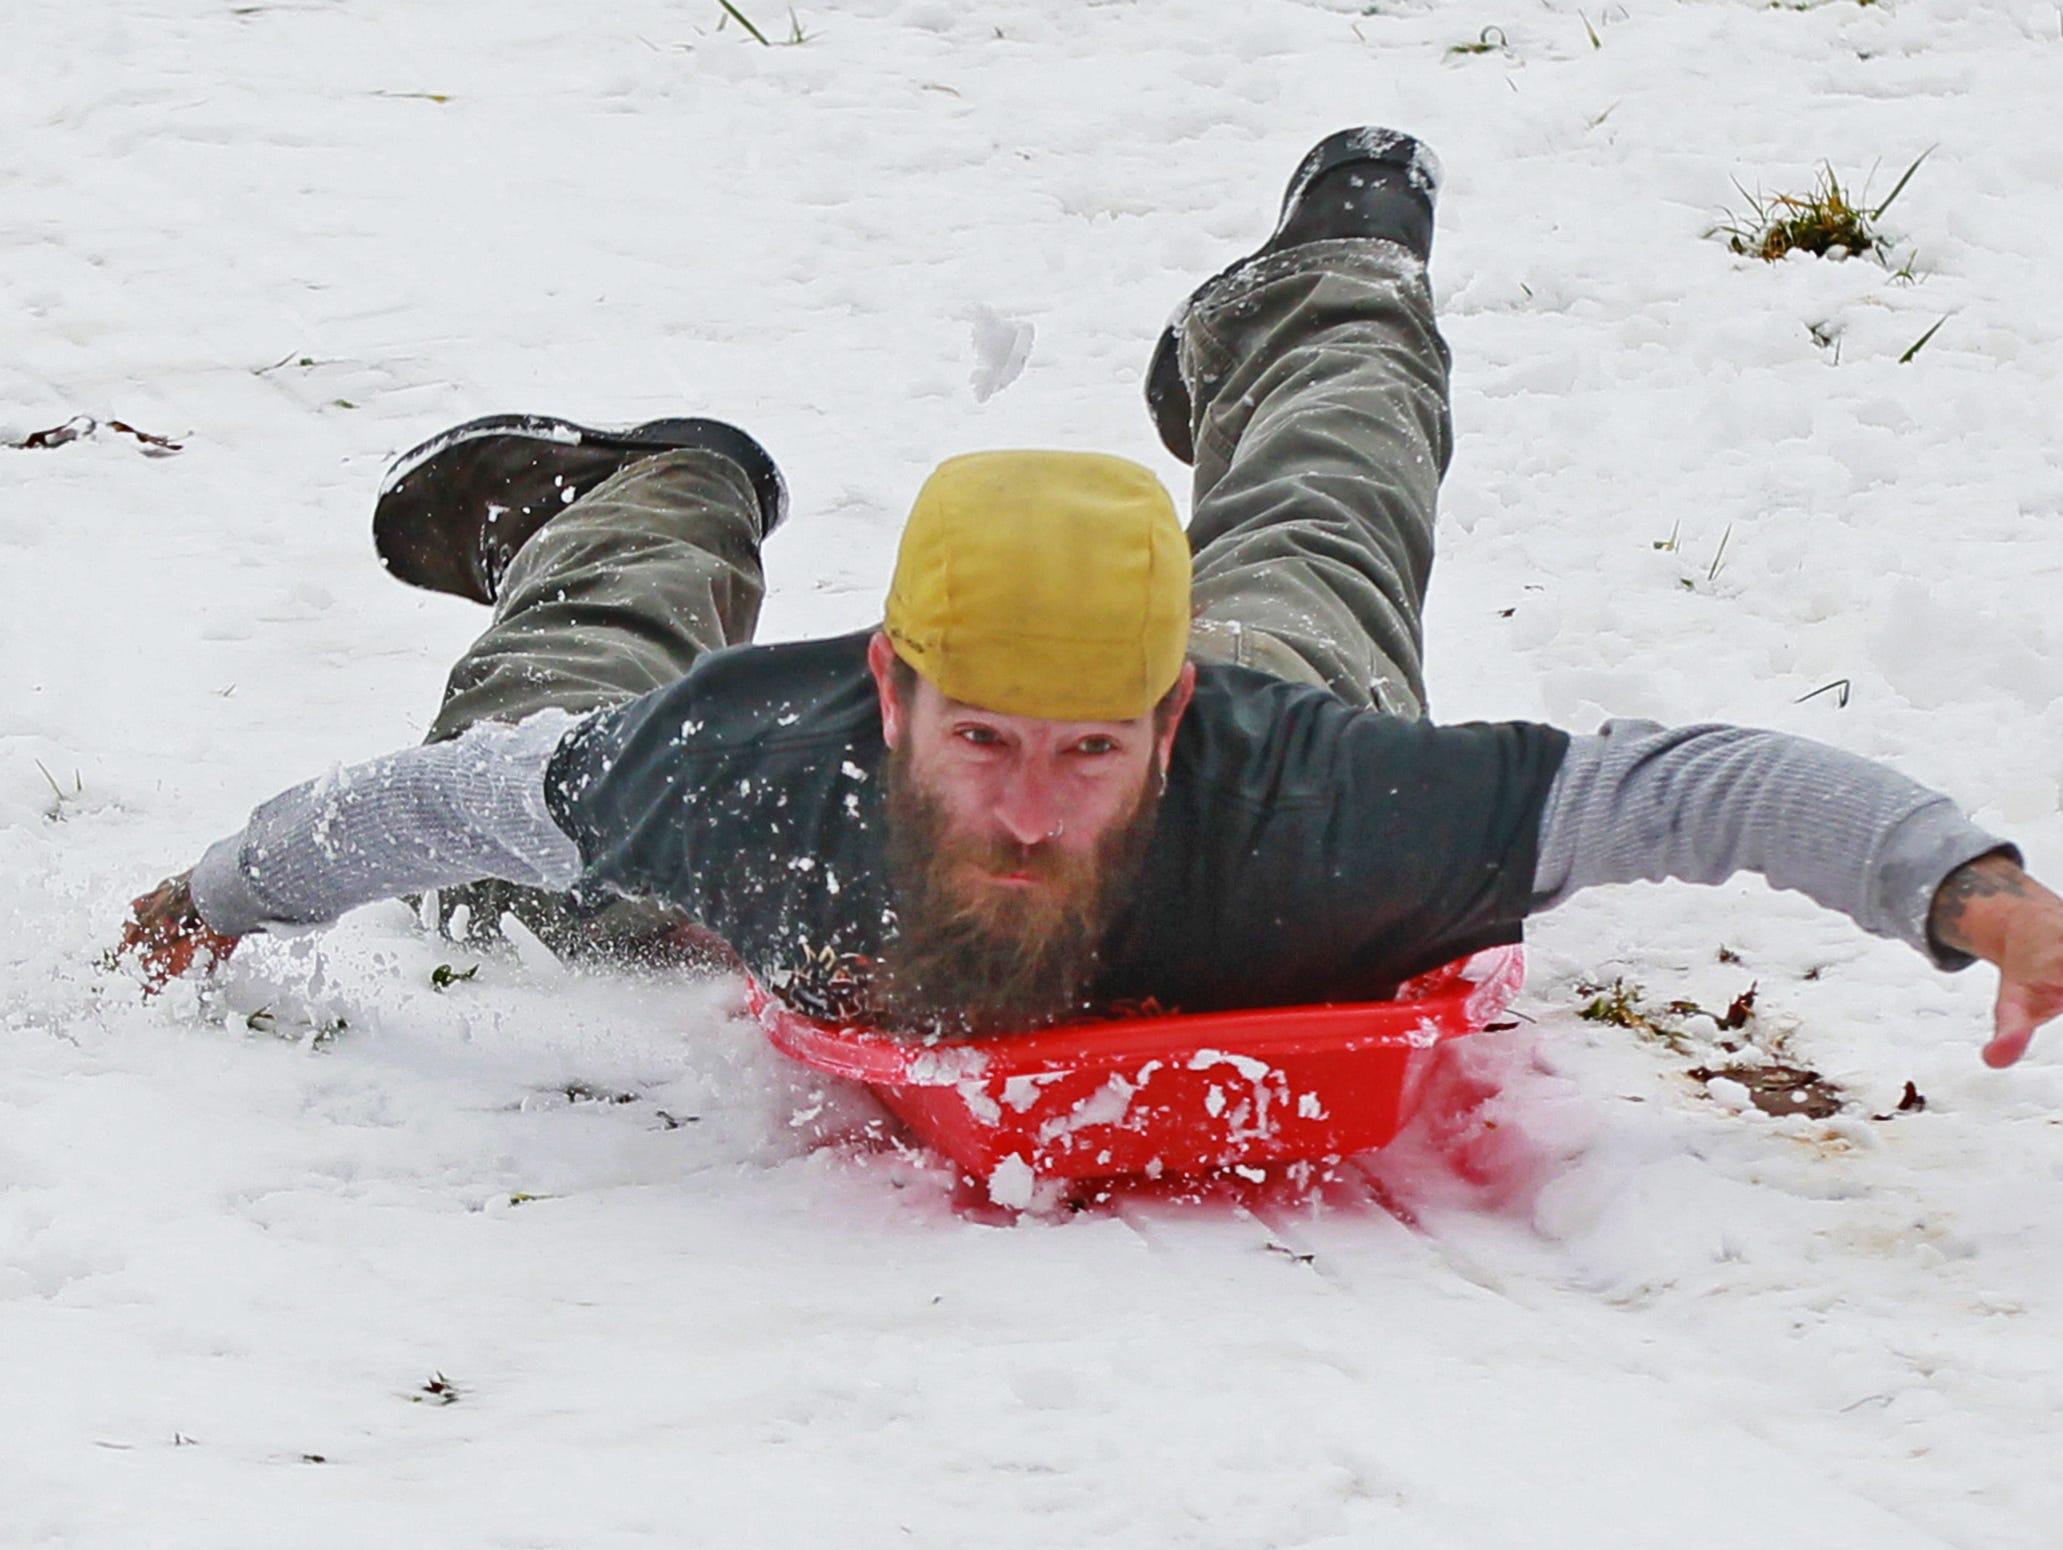 Michael Tucker of Walhalla slides head-first down a snowy hill at Depot Park in Walhalla in 2015.